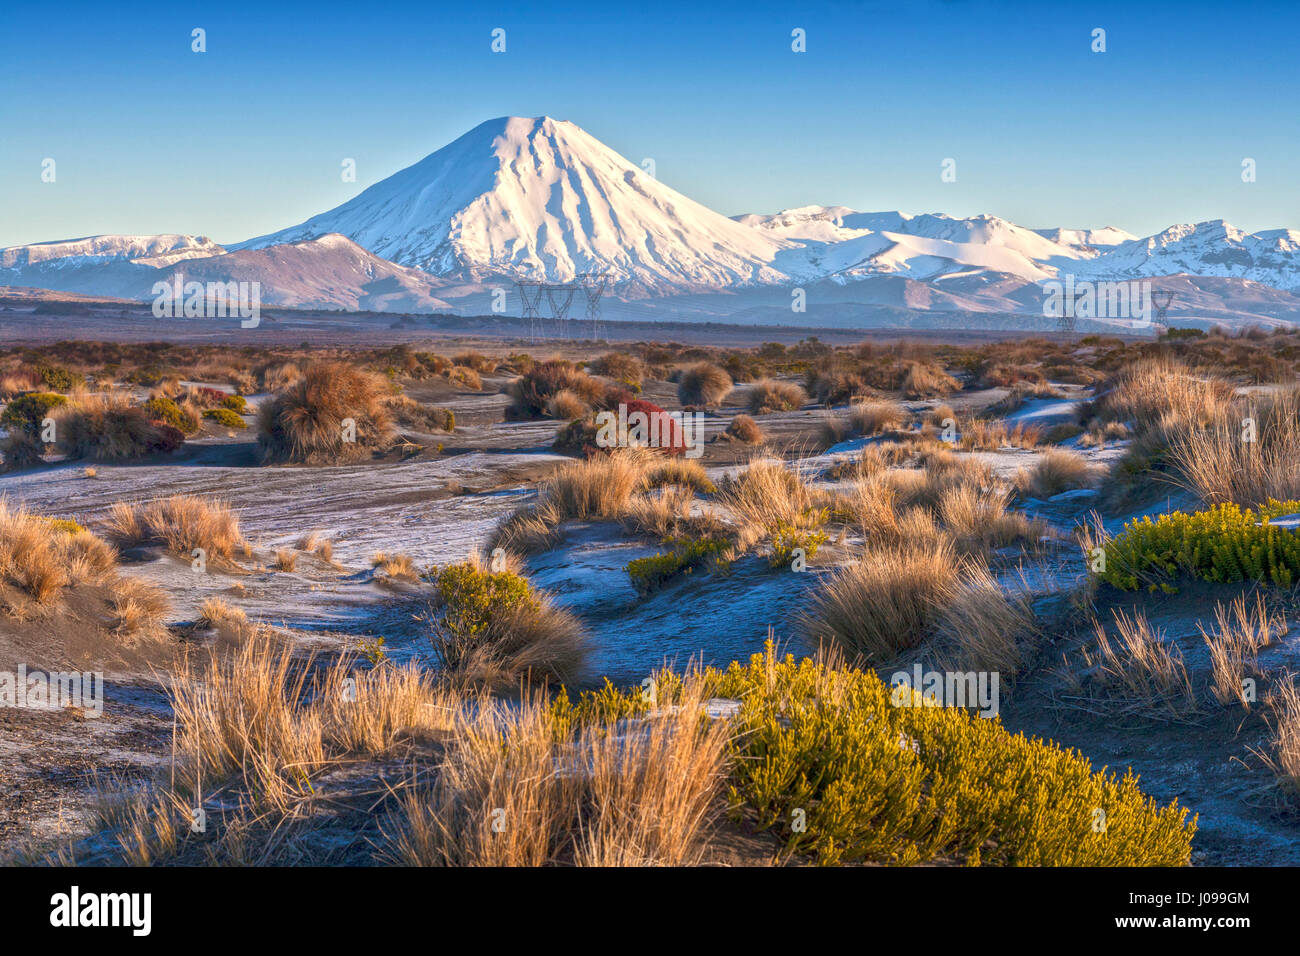 Mount Ngauruhoe and the Rangipo Desert, Tongariro National Park, New Zealand - Stock Image